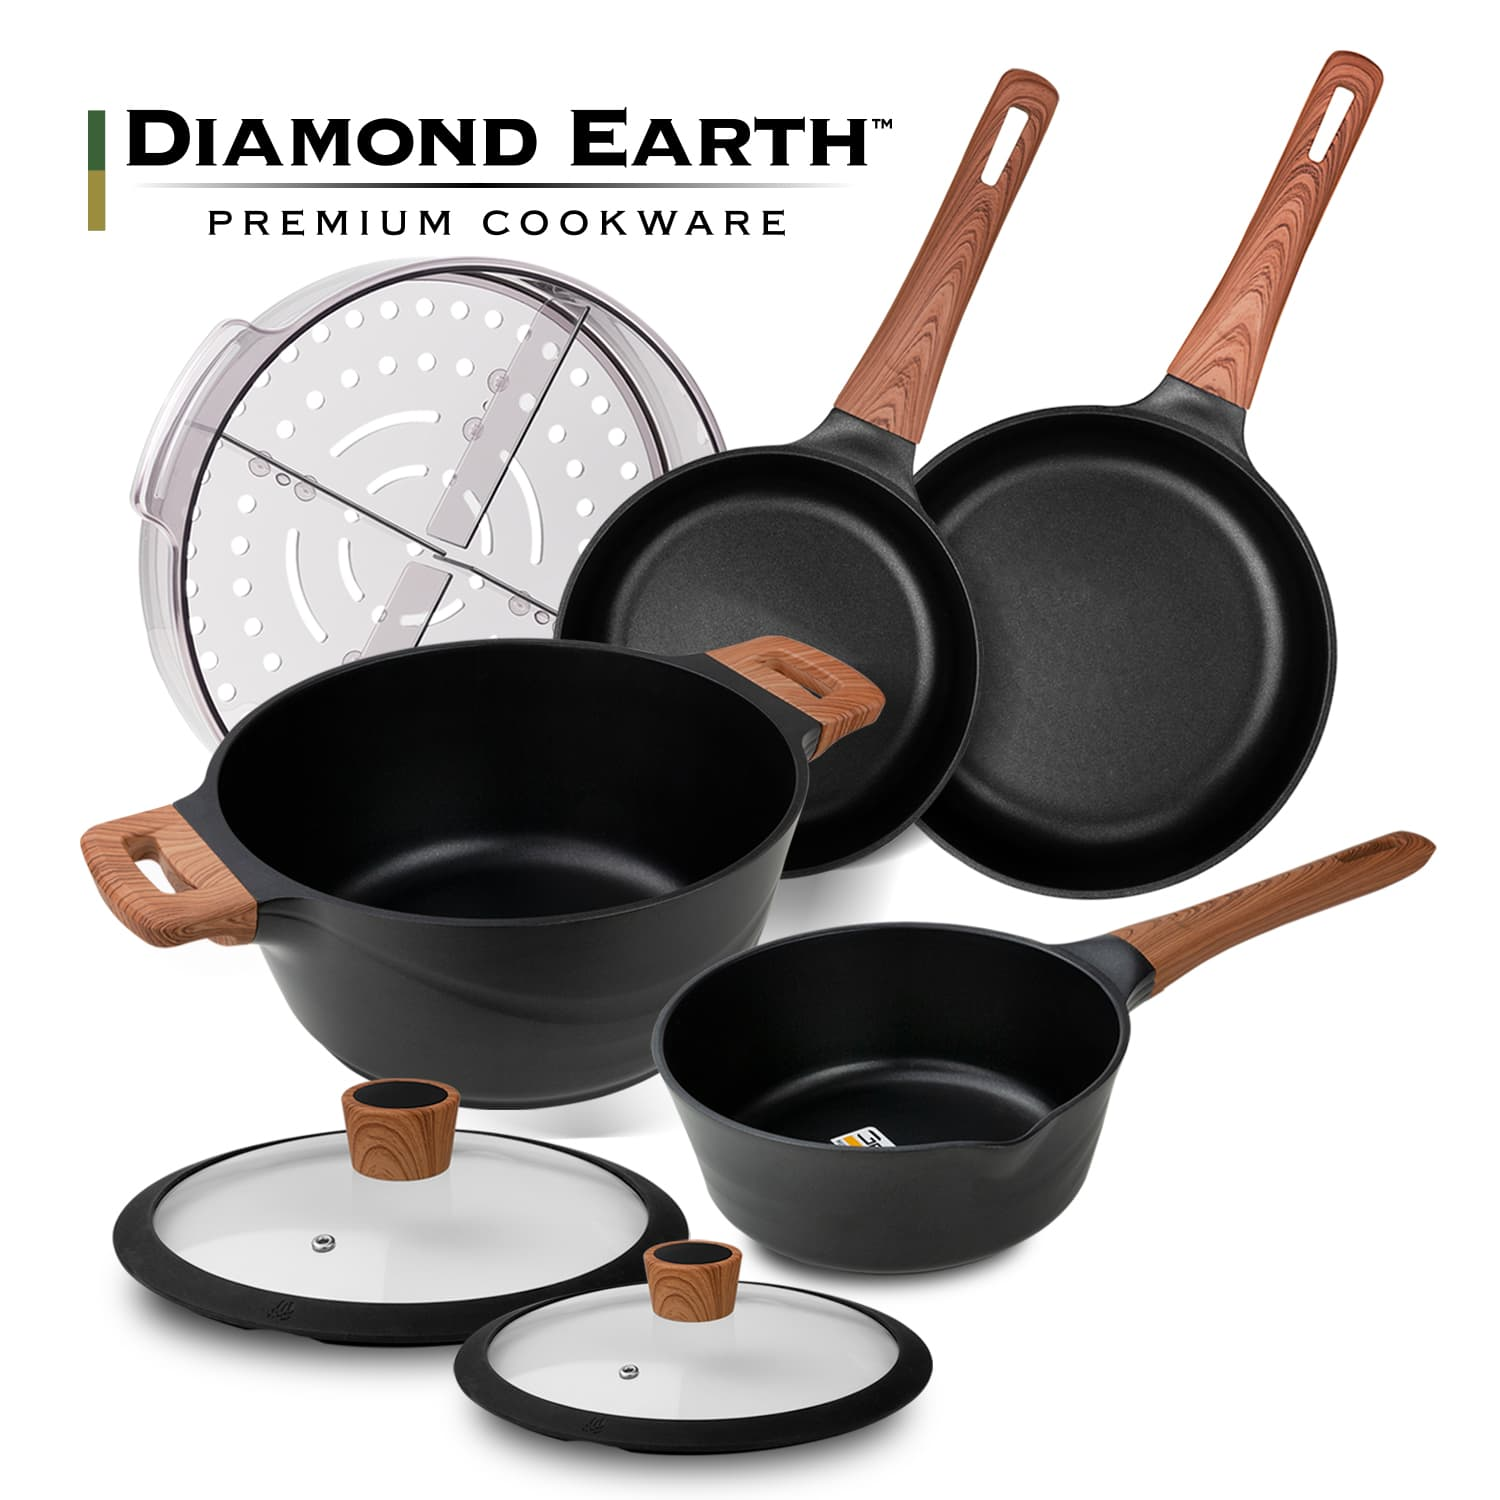 Diamond Earth Premium Non-Stick 7pc Cookware Set + Choose Your BONUS Gifts!